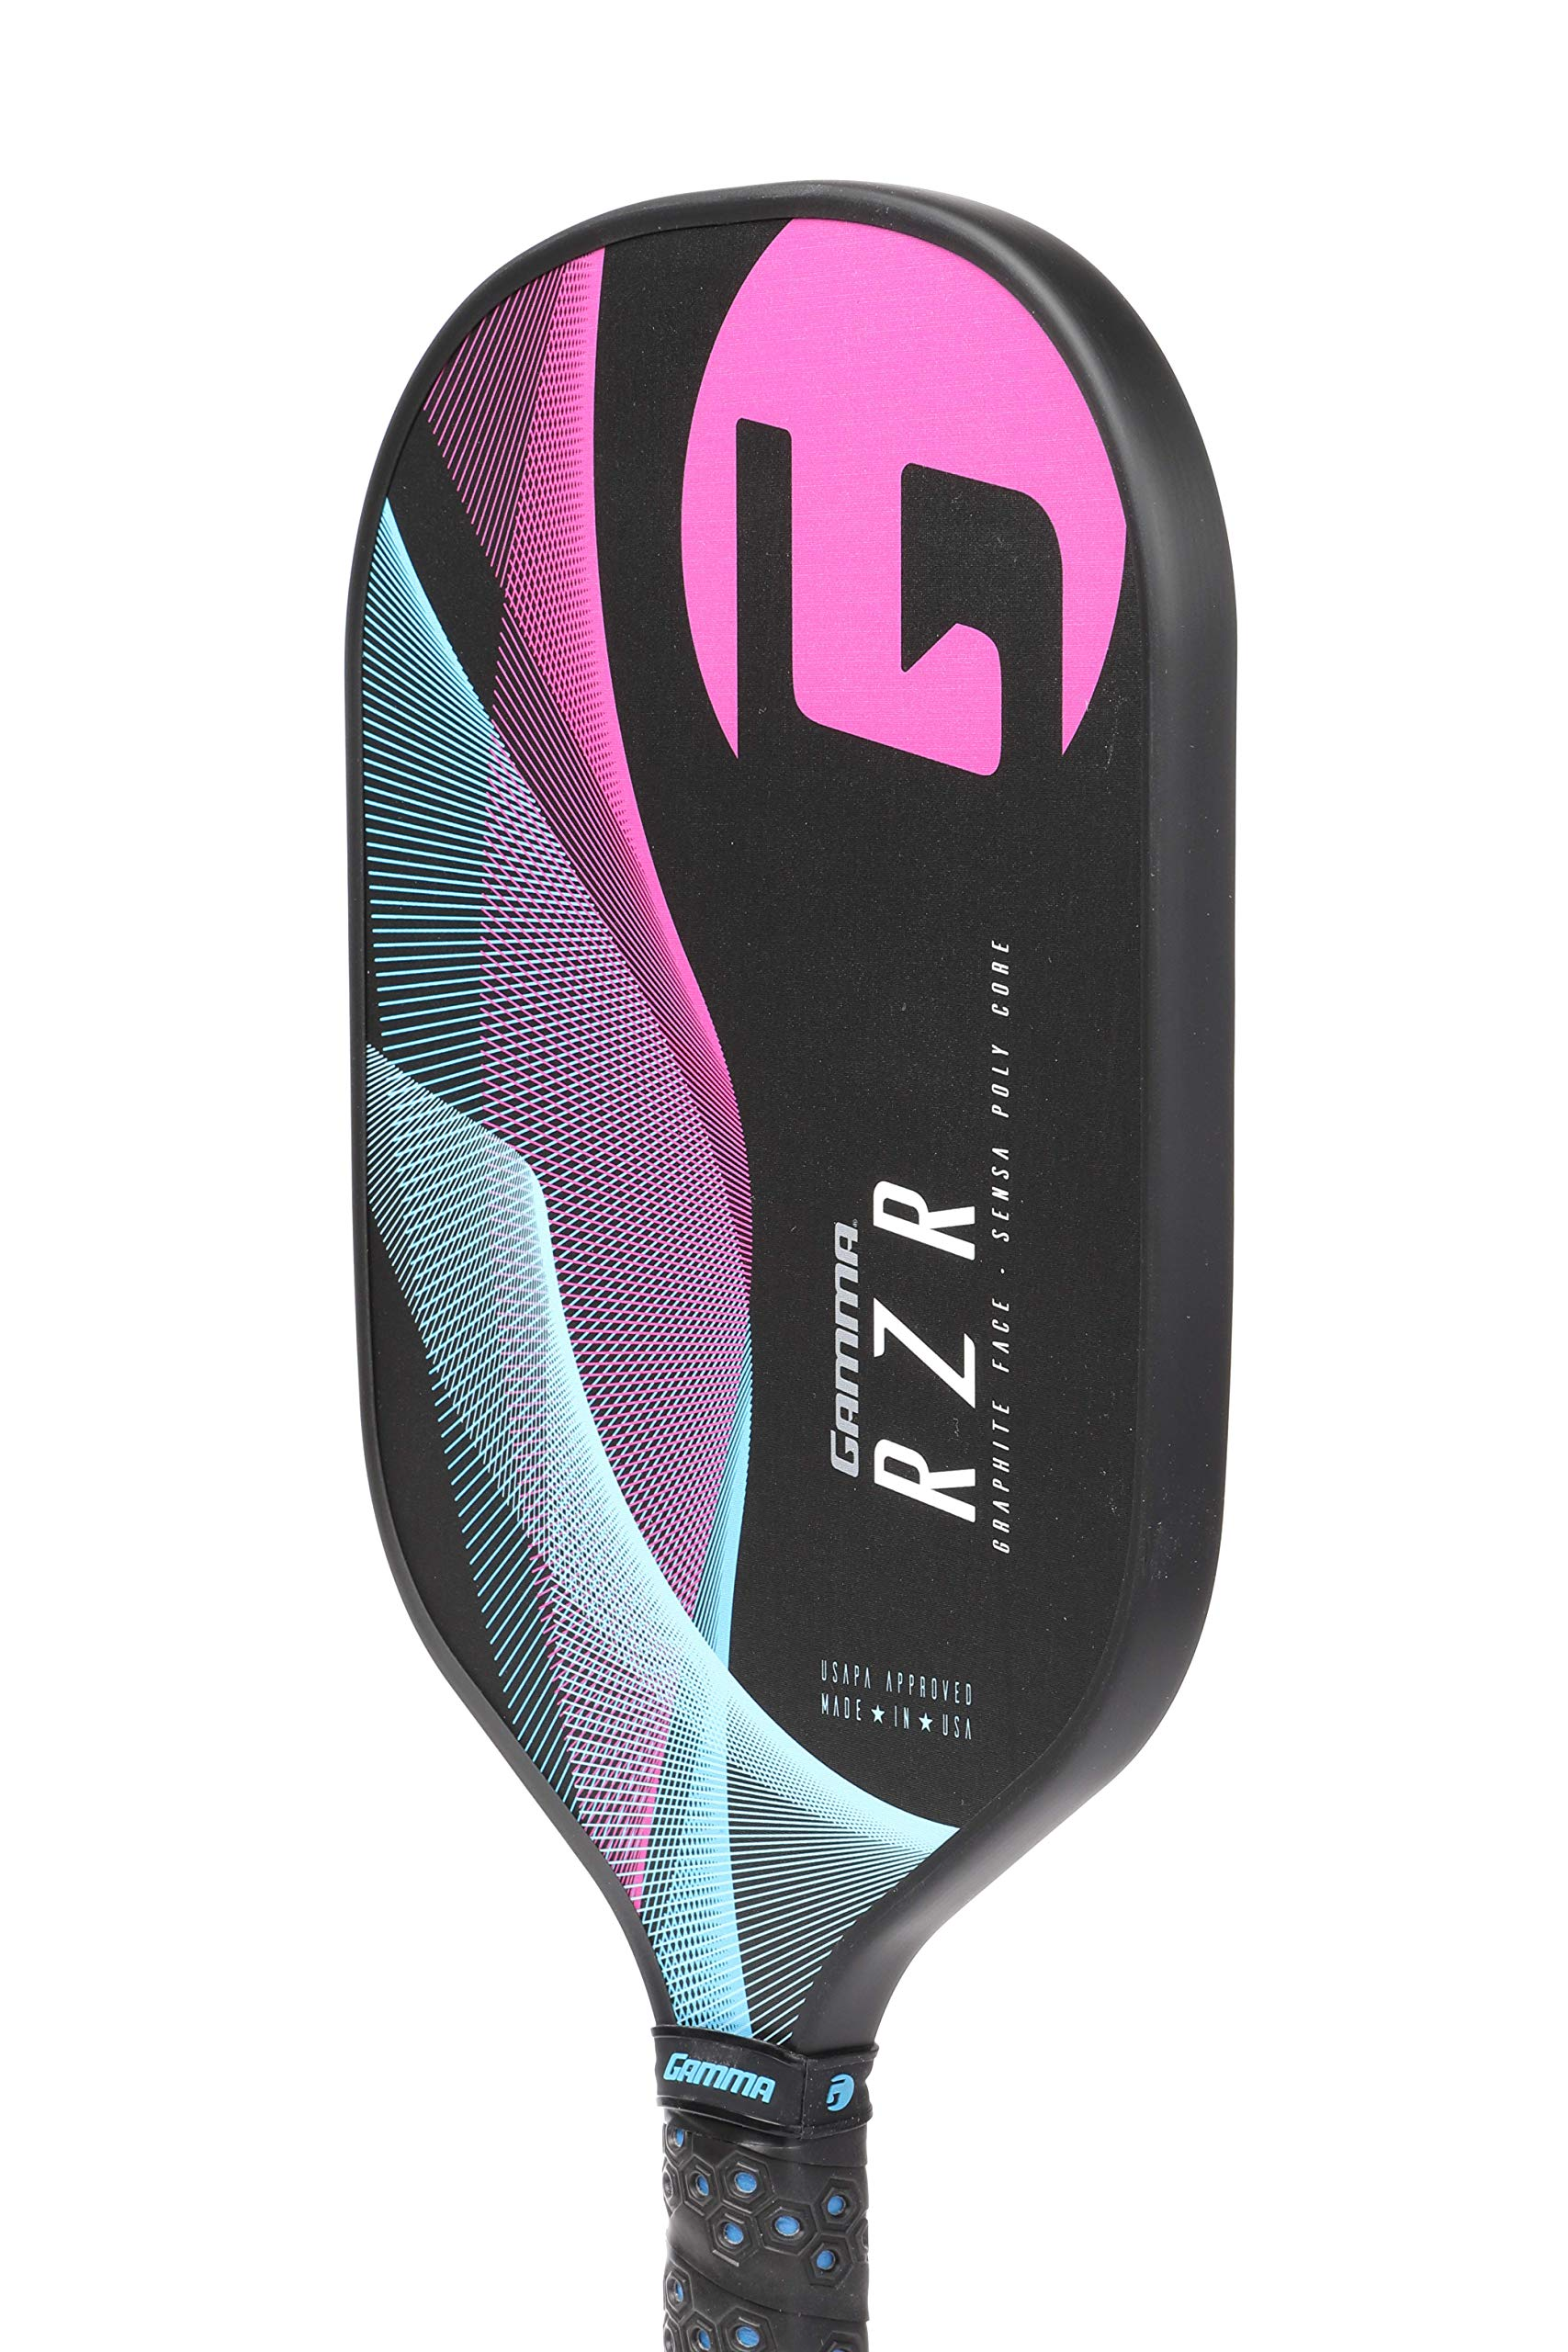 Gamma RZR Composite Pickleball Paddle: Pickle Ball Paddles for Indoor & Outdoor Play - USAPA Approved Racquet for Adults & Kids - Pink/Blue by Gamma (Image #3)